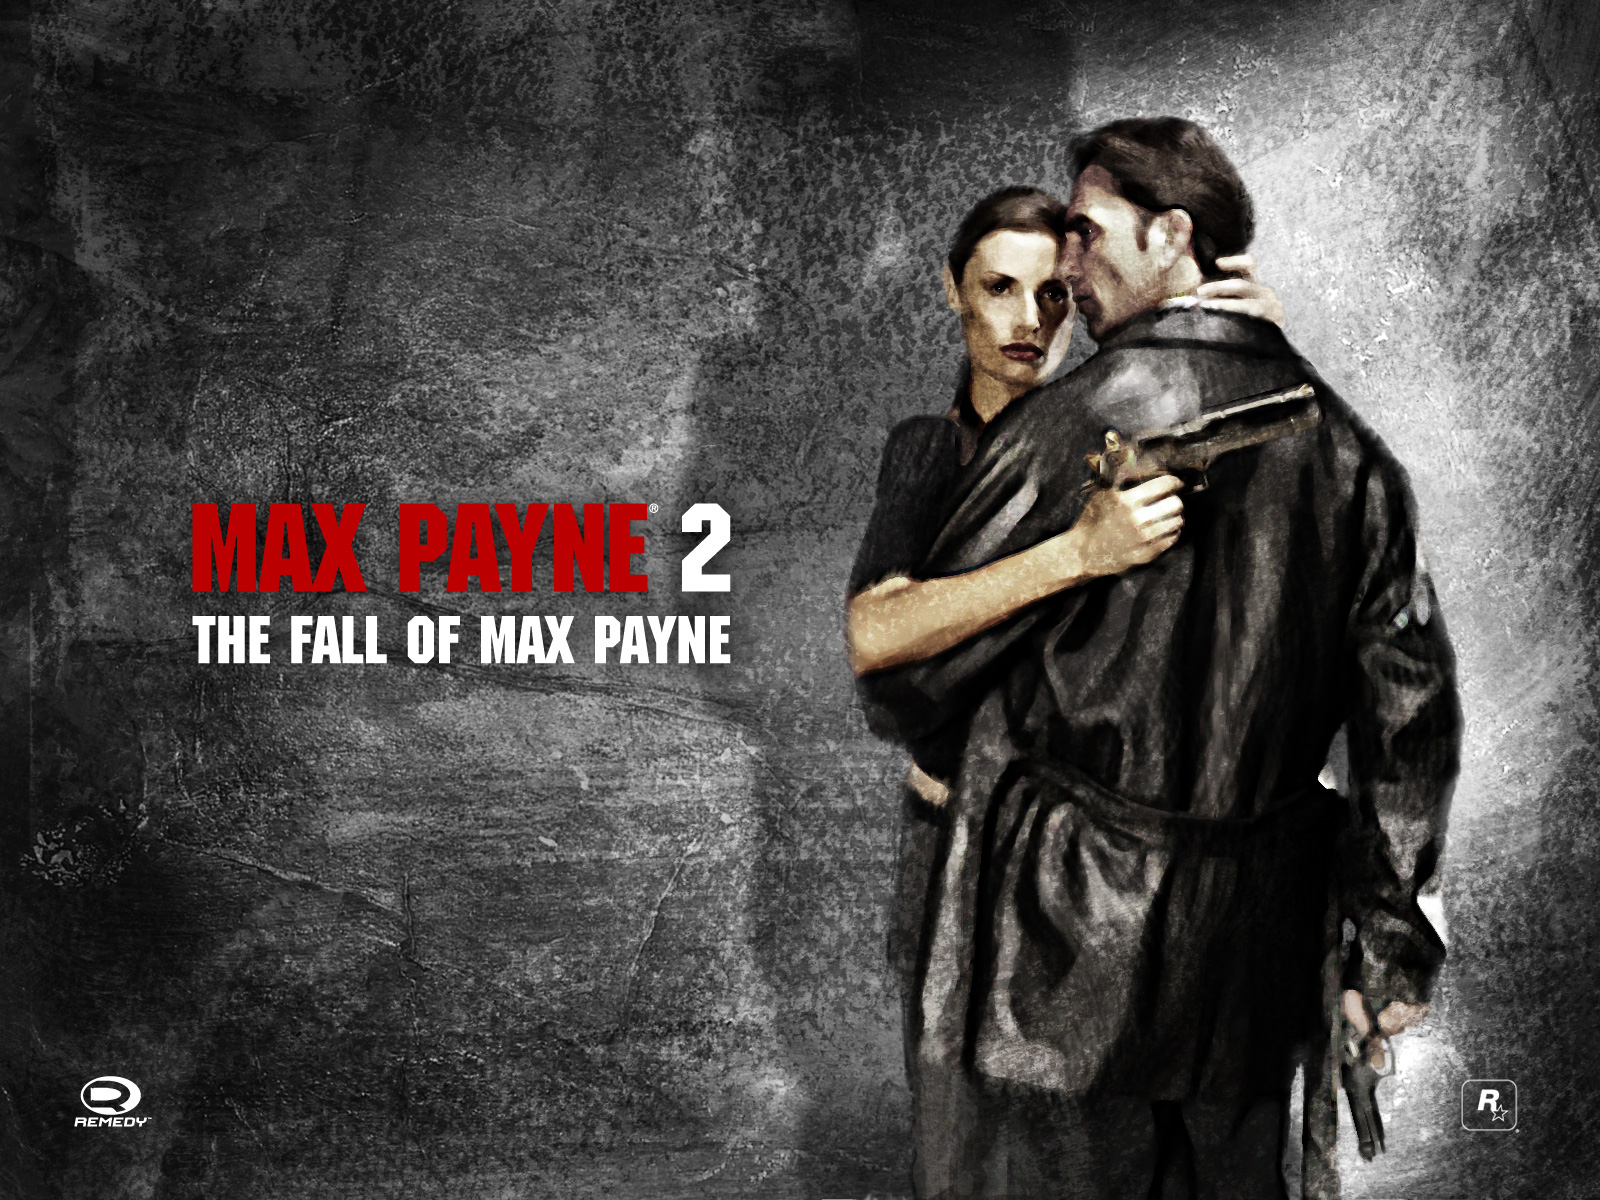 max payne 2 download myegy